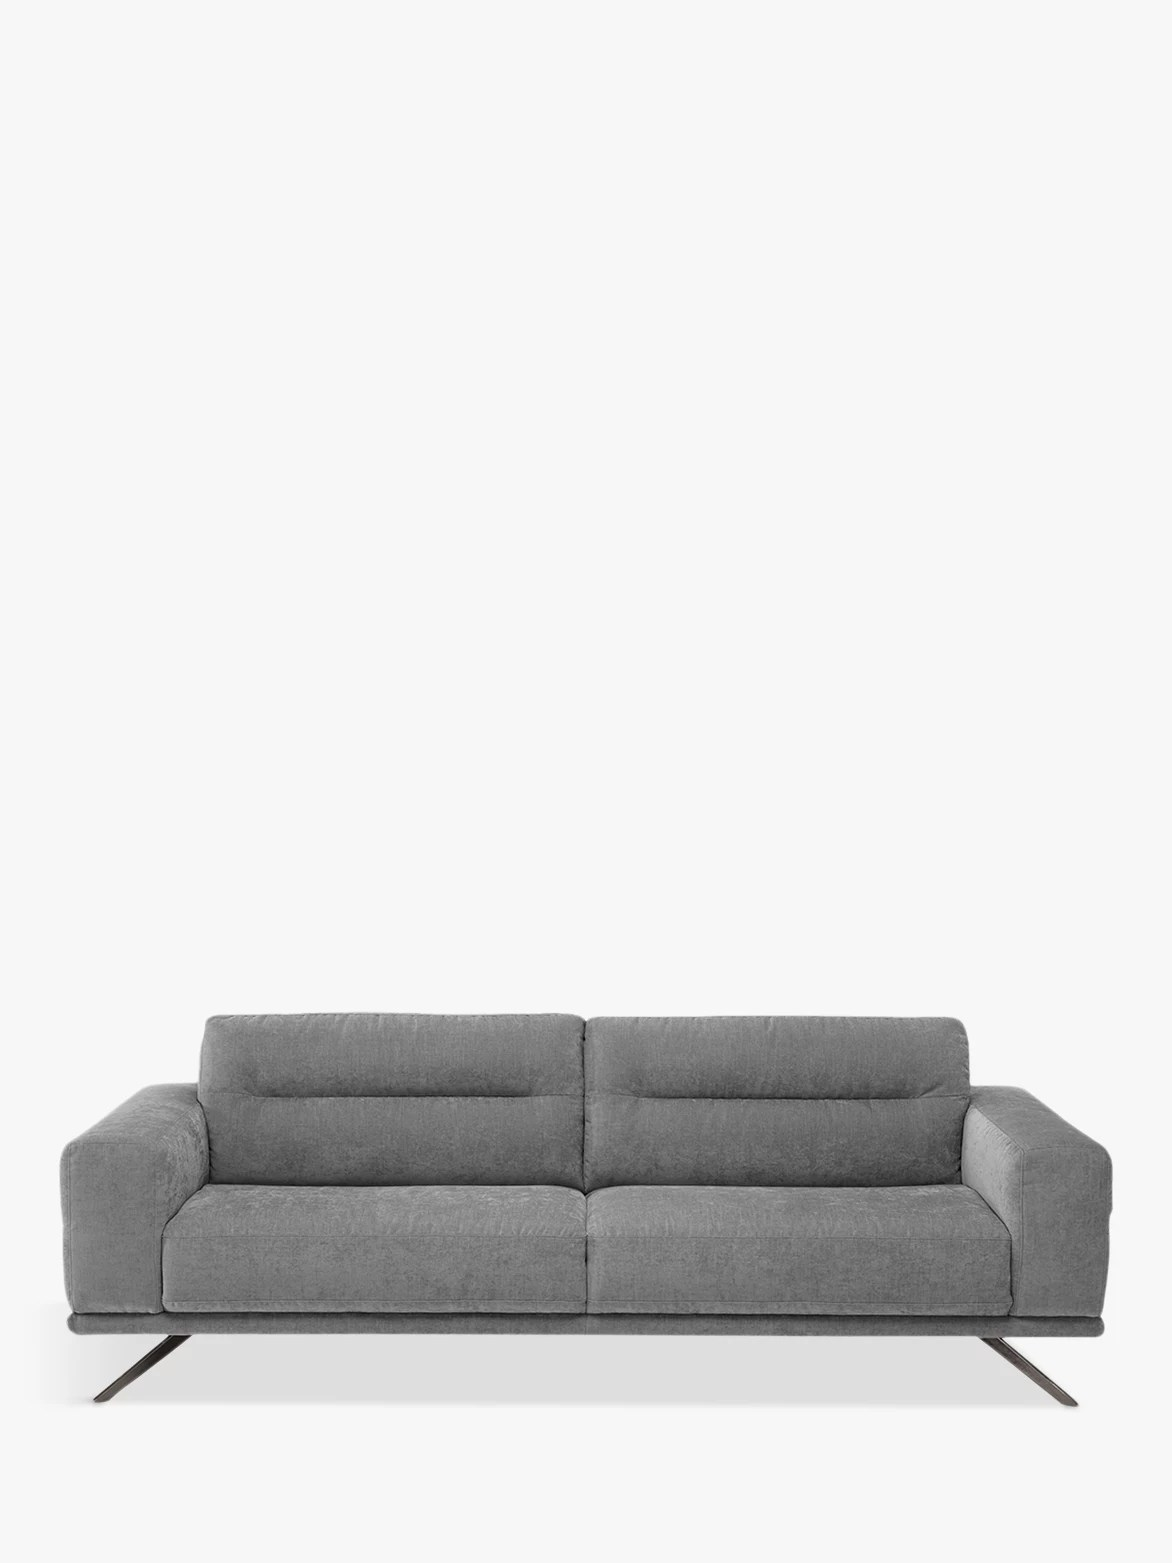 new york sofa bed nz sofas 3 seater fabric hogan with